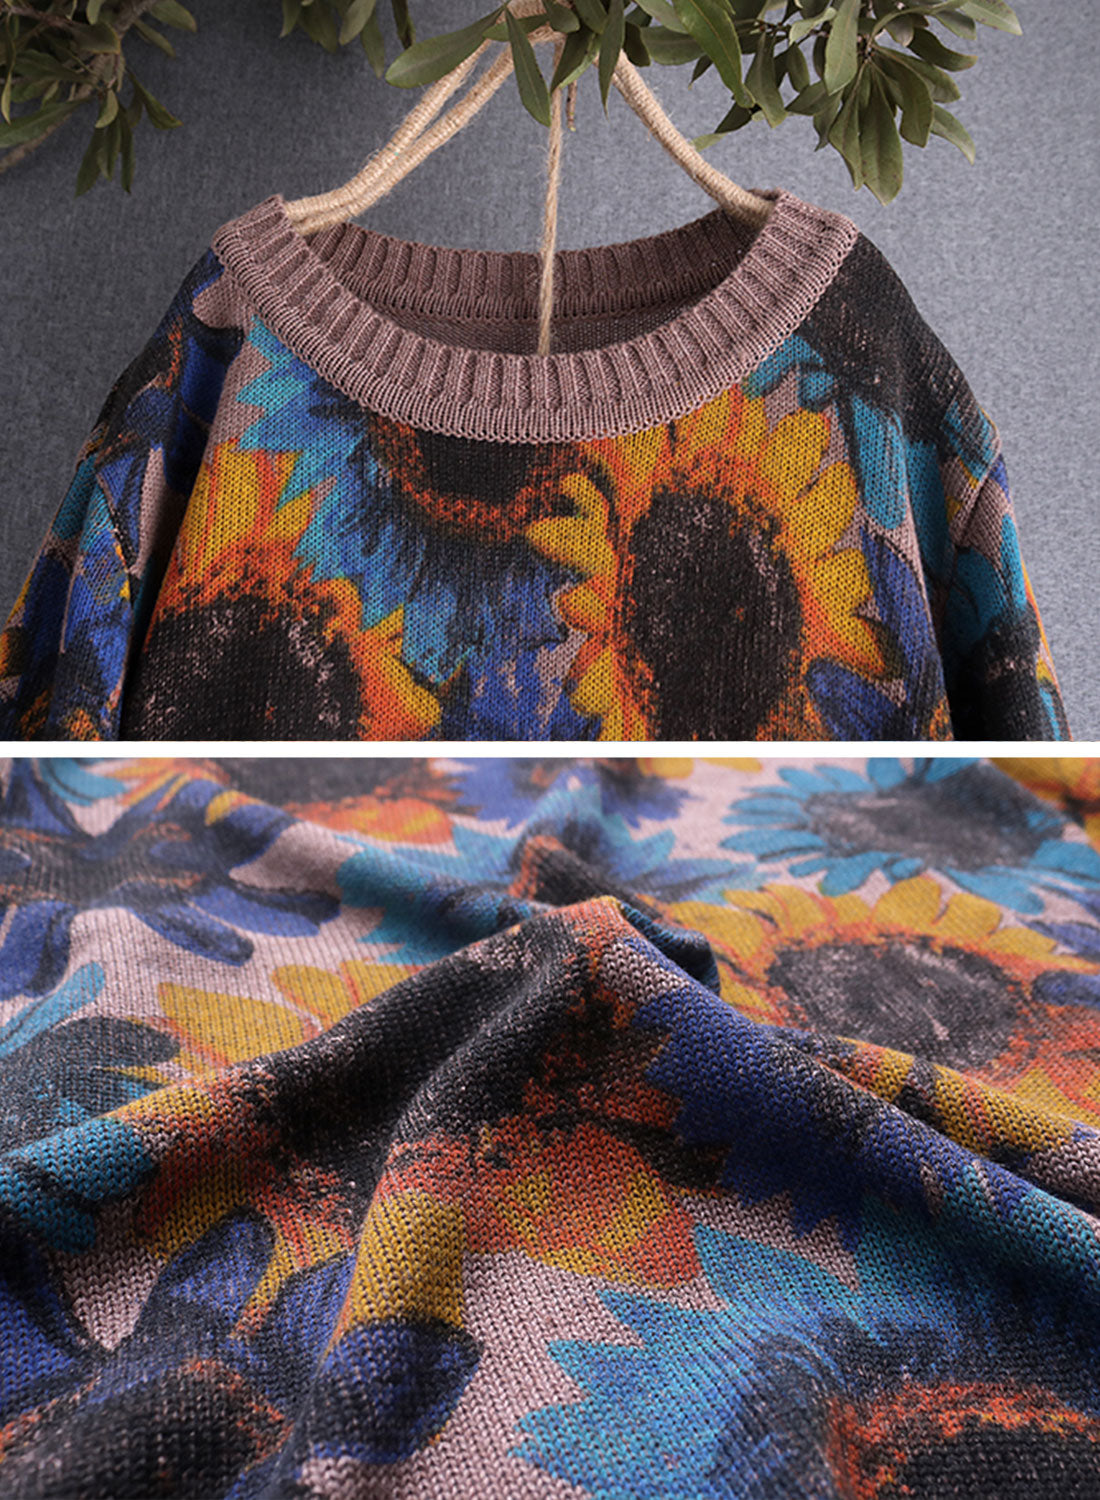 Bloomed Sun Flower Cotton Sweater Details 5